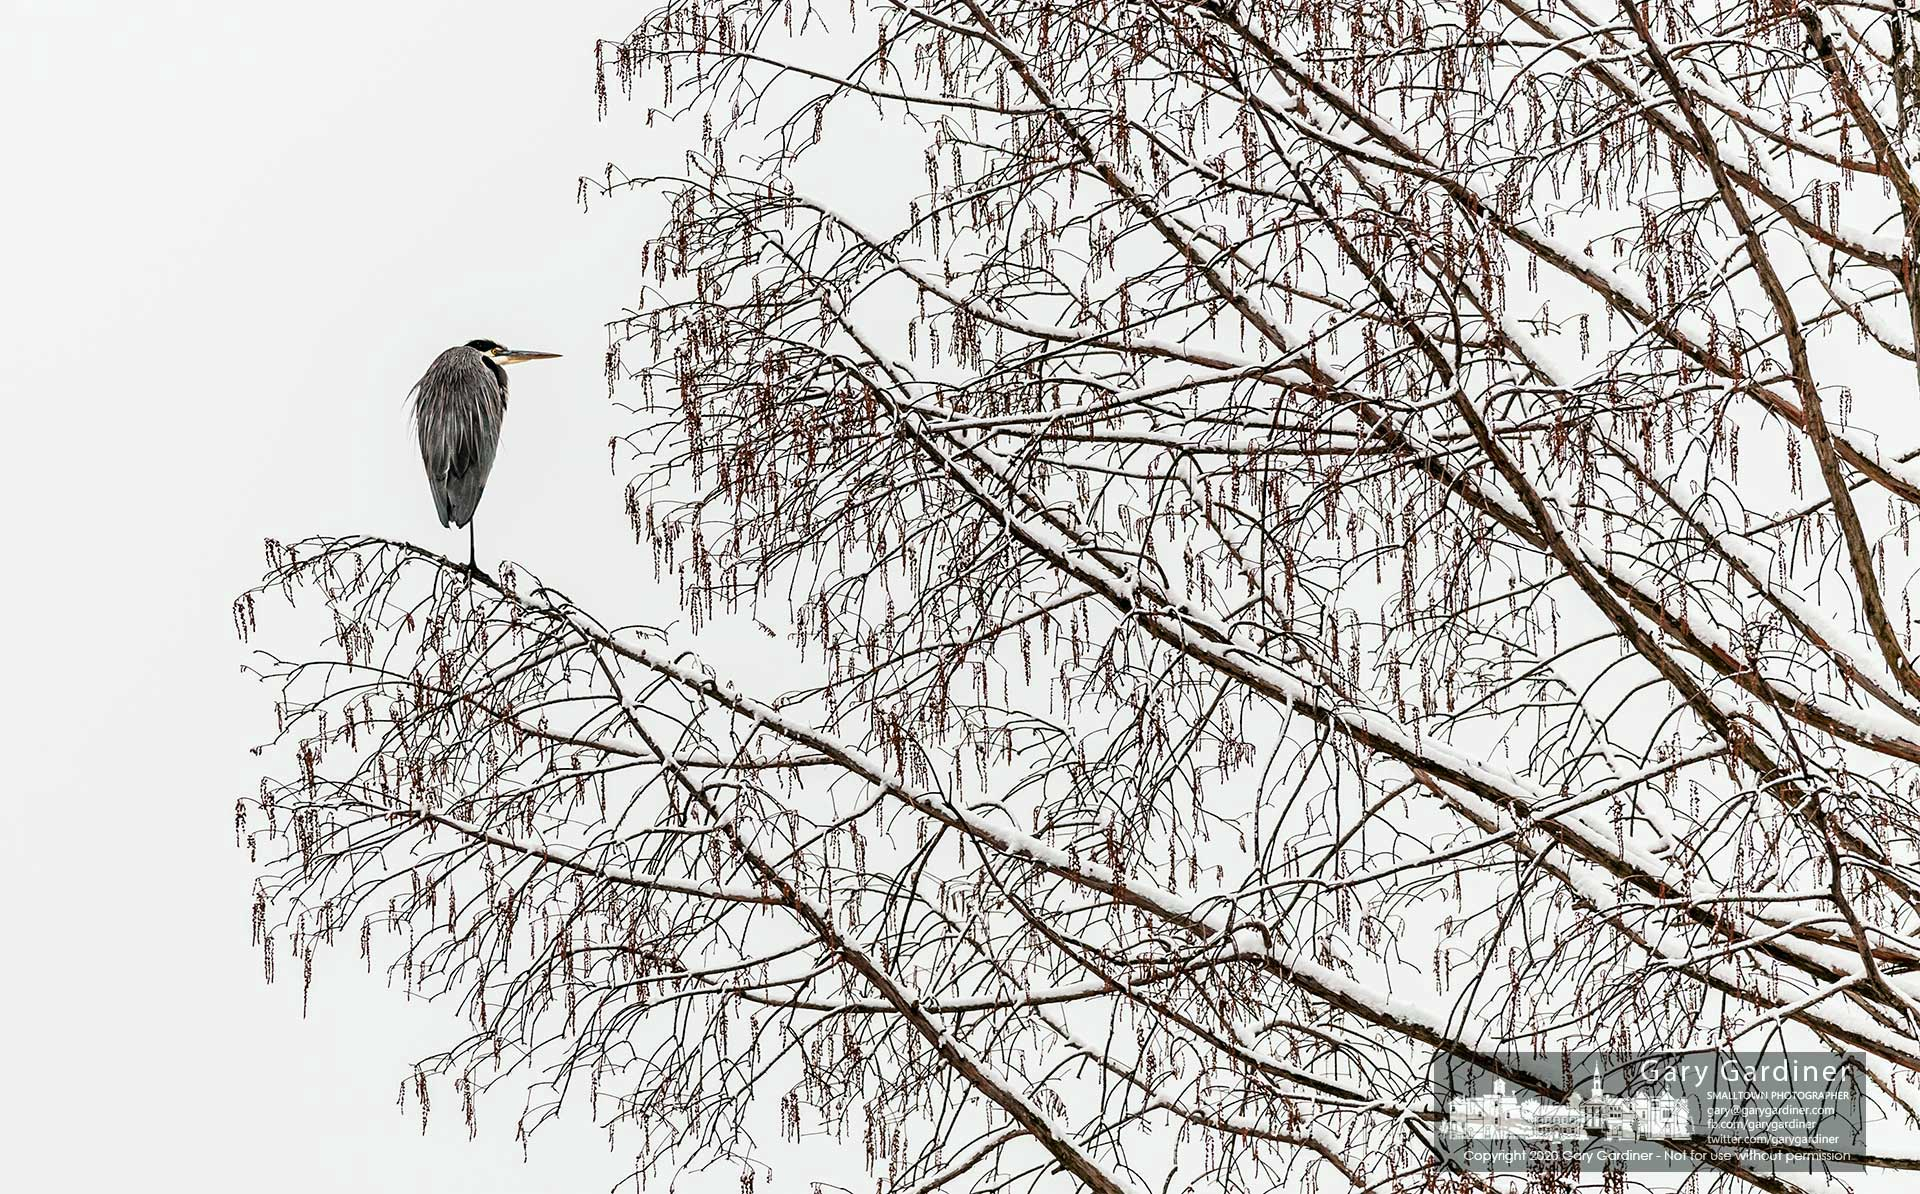 A blue heron rests on one foot on the end of a bald cypress tree limb at Highlands Park during a pause in the day-long snowfall. My Final Photo for Dec. 16, 2020.